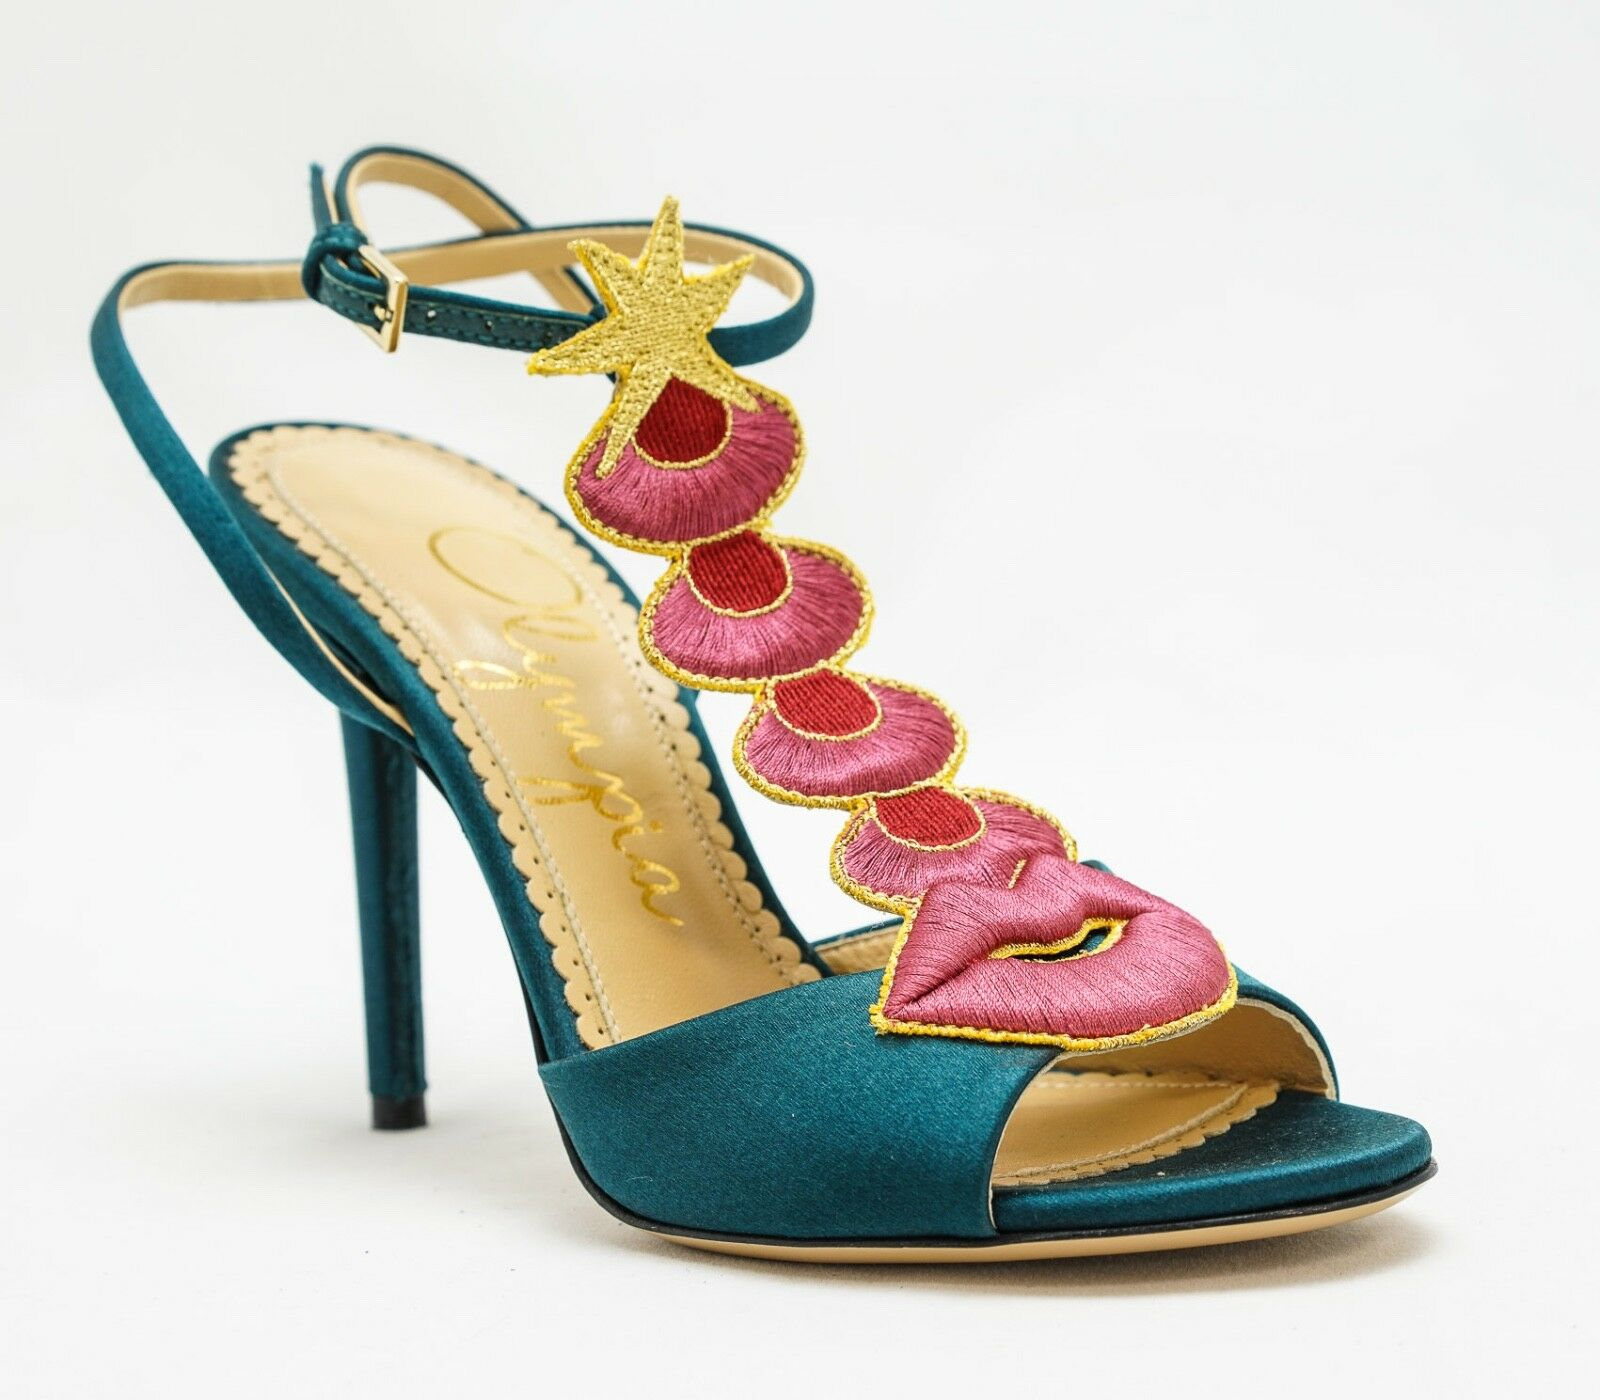 Charlotte Olympia Sci Fi Sandals in Night Sky Blue Satin - New in Box